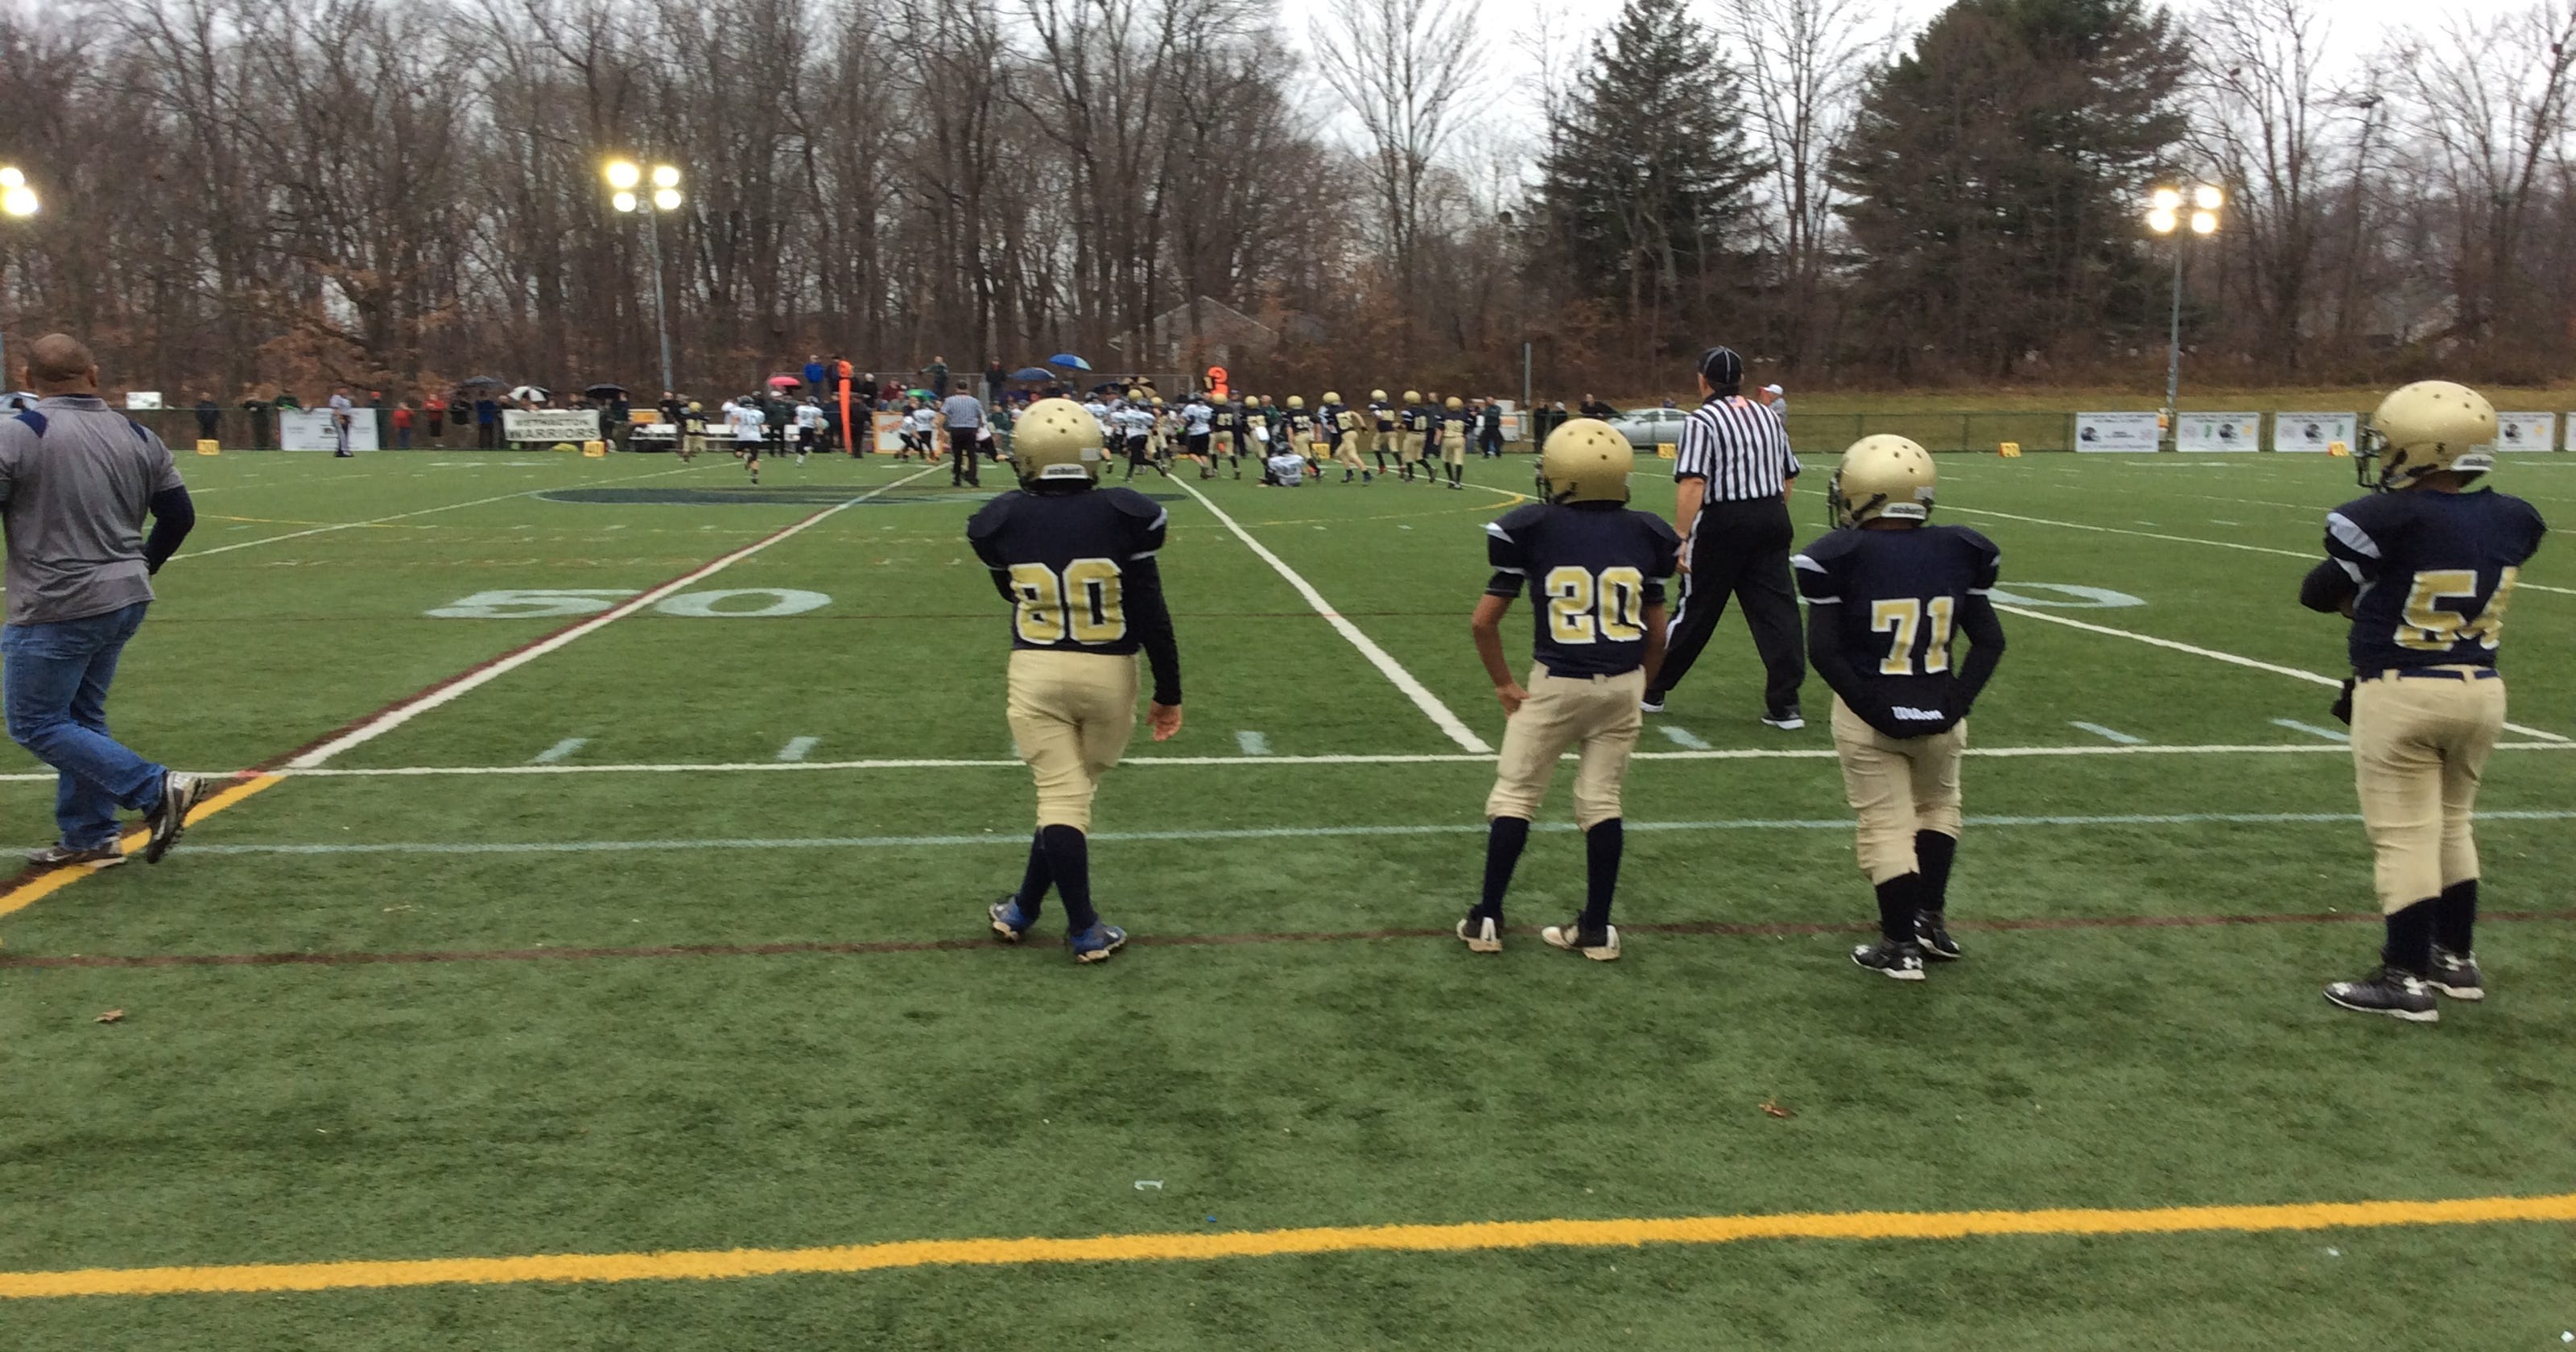 820c7ea39 St. Cecilia s football team makes the PeeWee finals